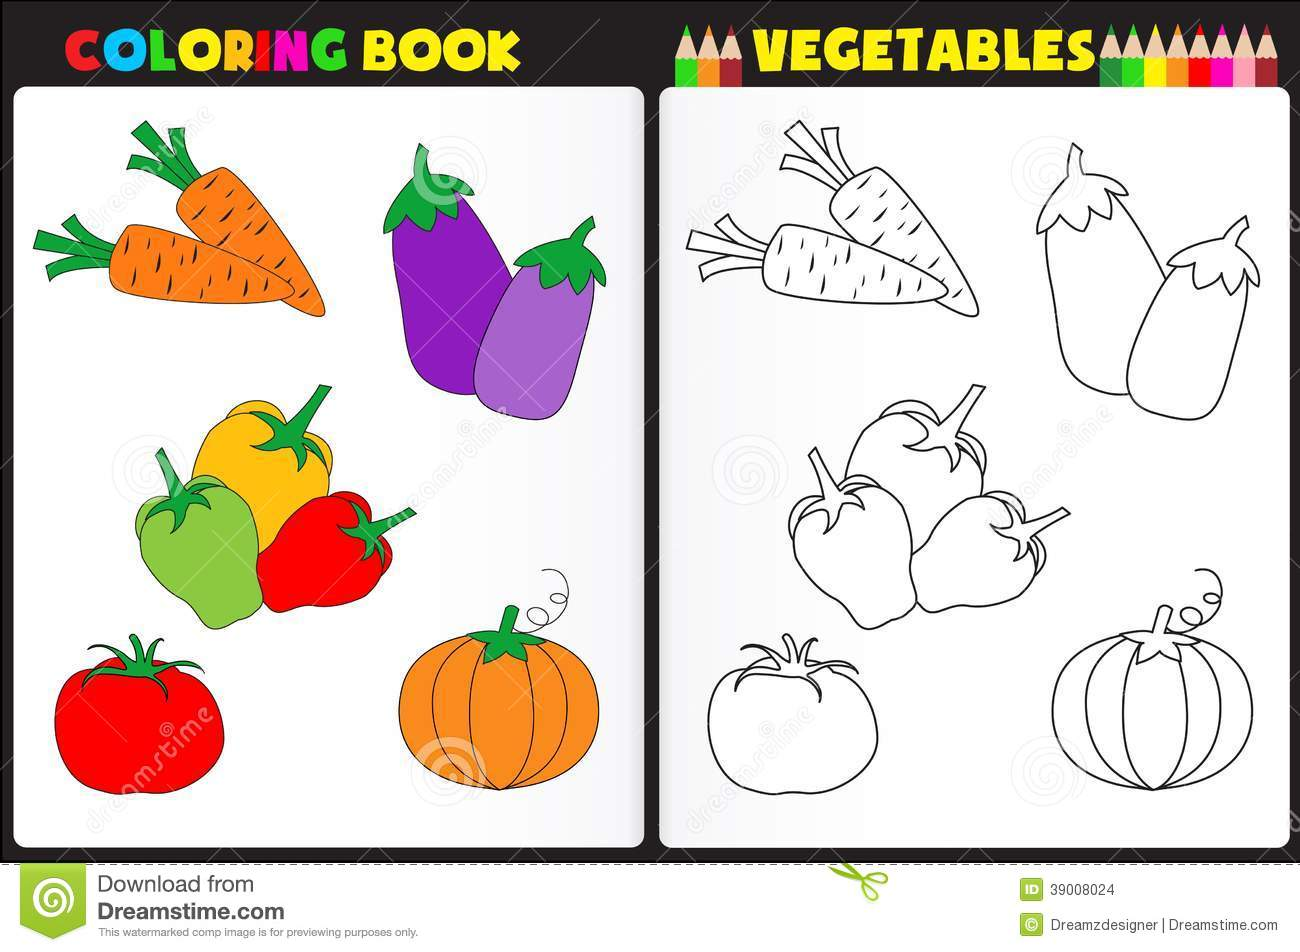 Coloring book pictures of vegetables - Coloring Book Vegetables